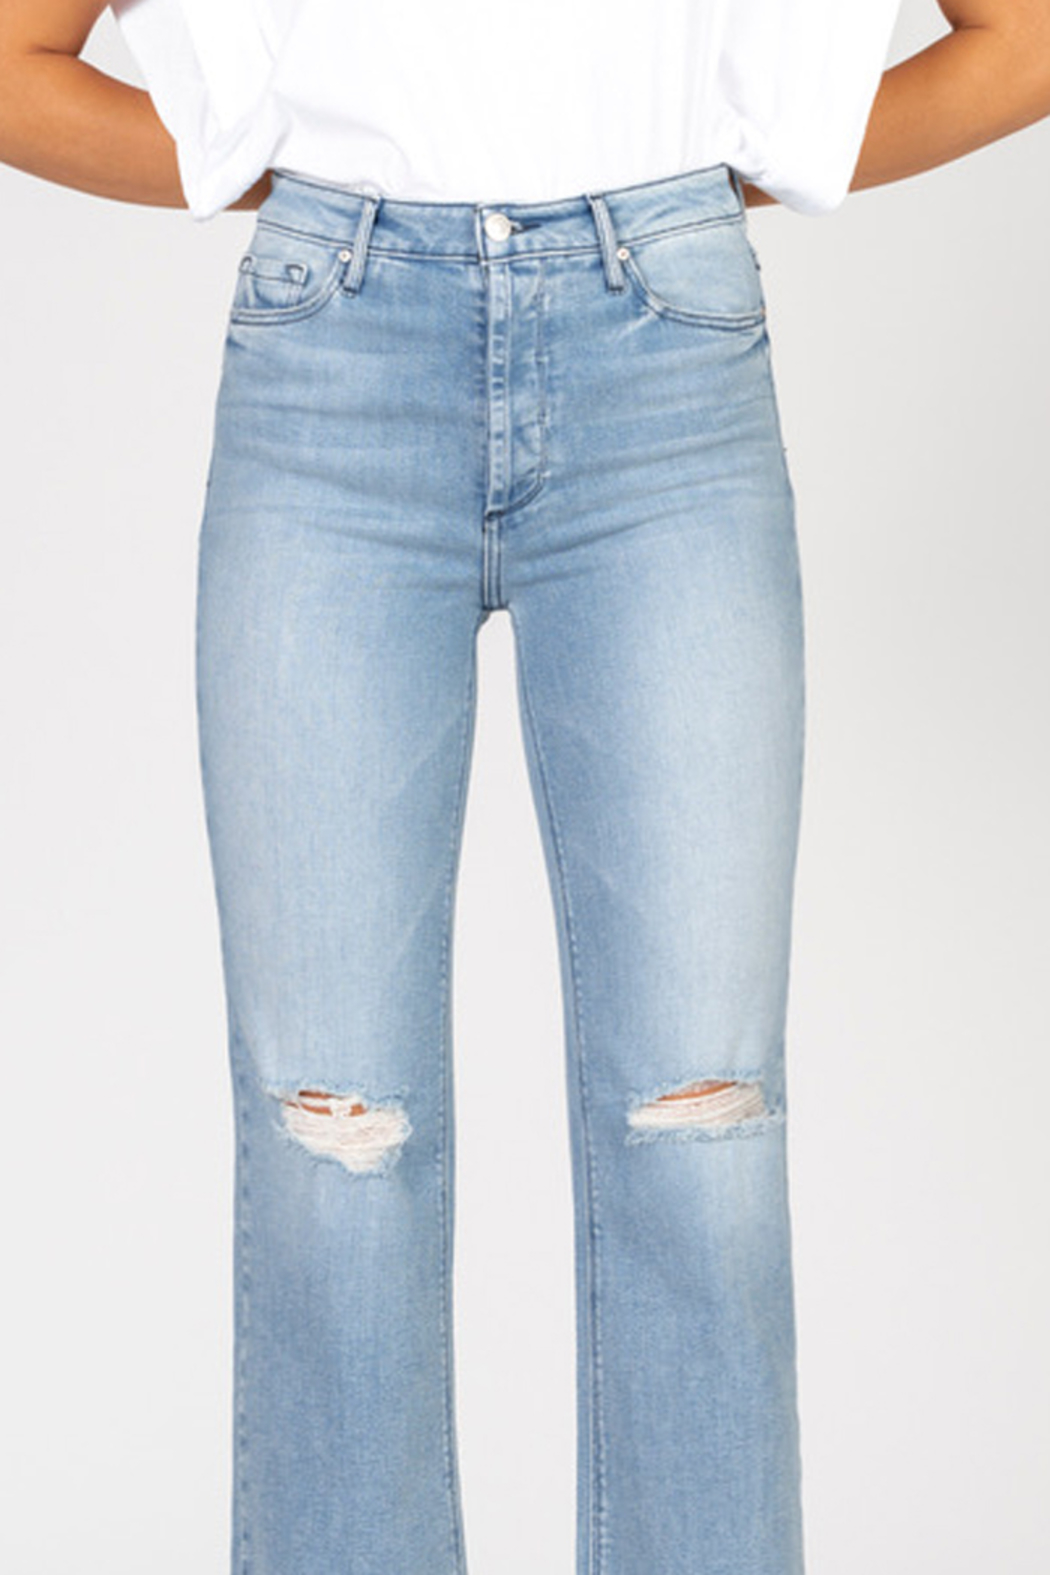 Black Orchid Denim BLACK ORCHID MARISA HIGH RISE STRAIGHT JEAN - Front Full Image